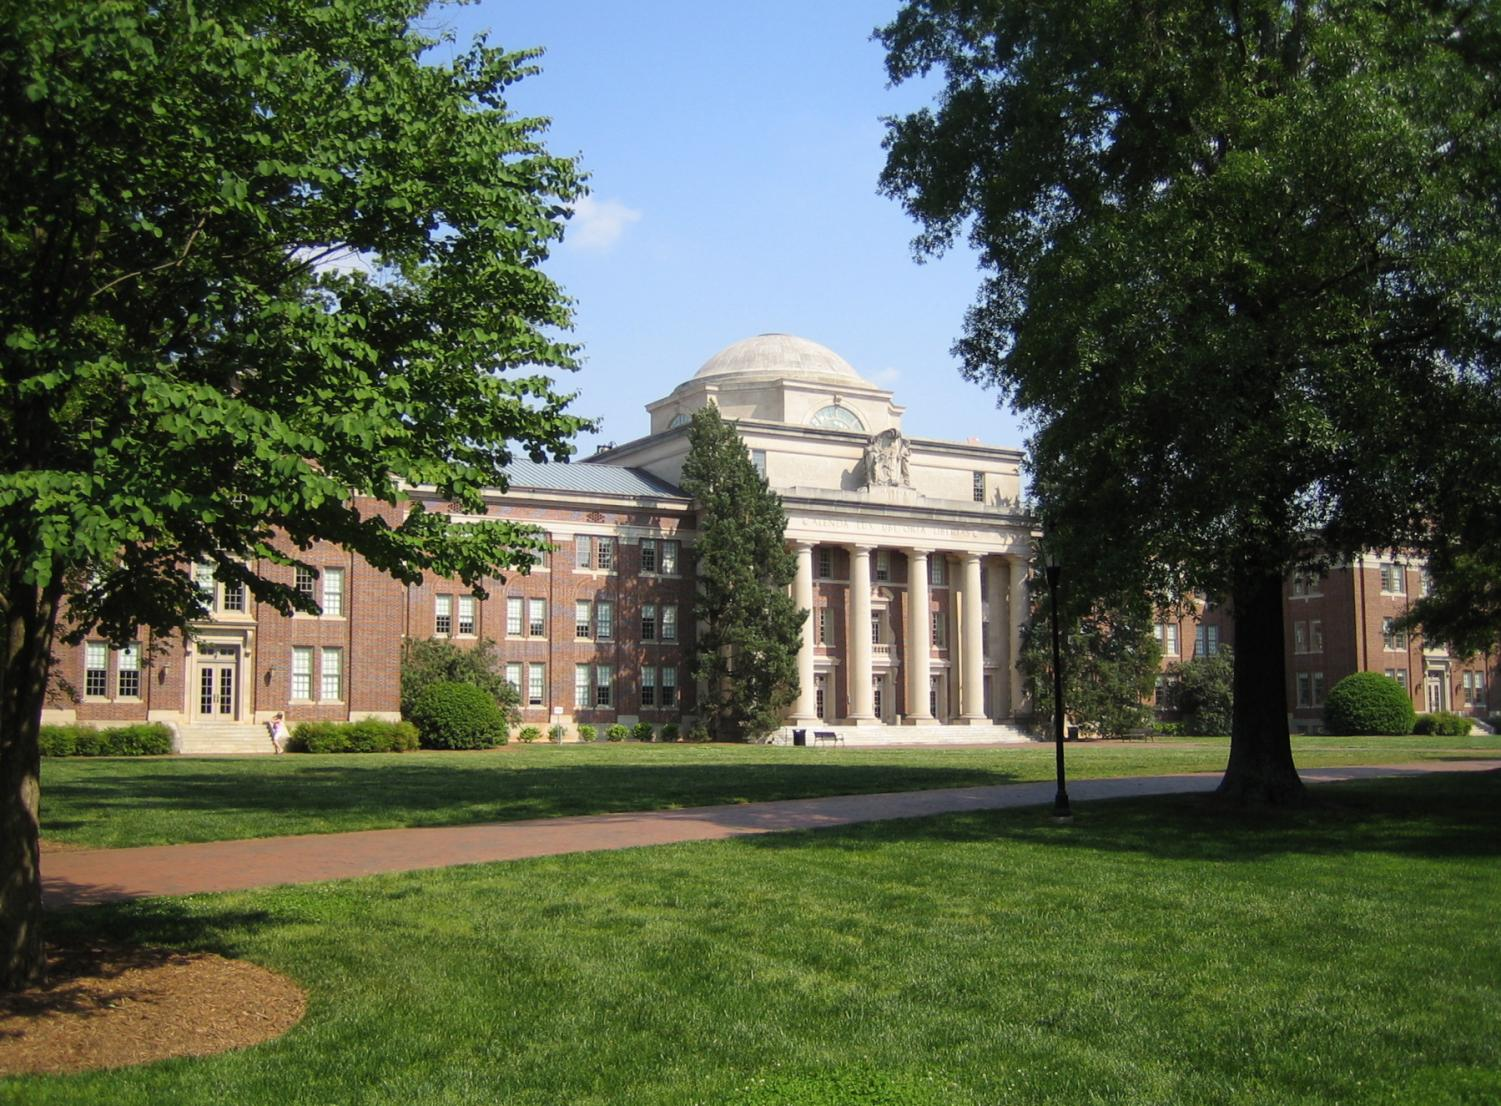 The academic center of Davidson College is the Chambers Building. Classes that are for non arts or non science majors are located here.